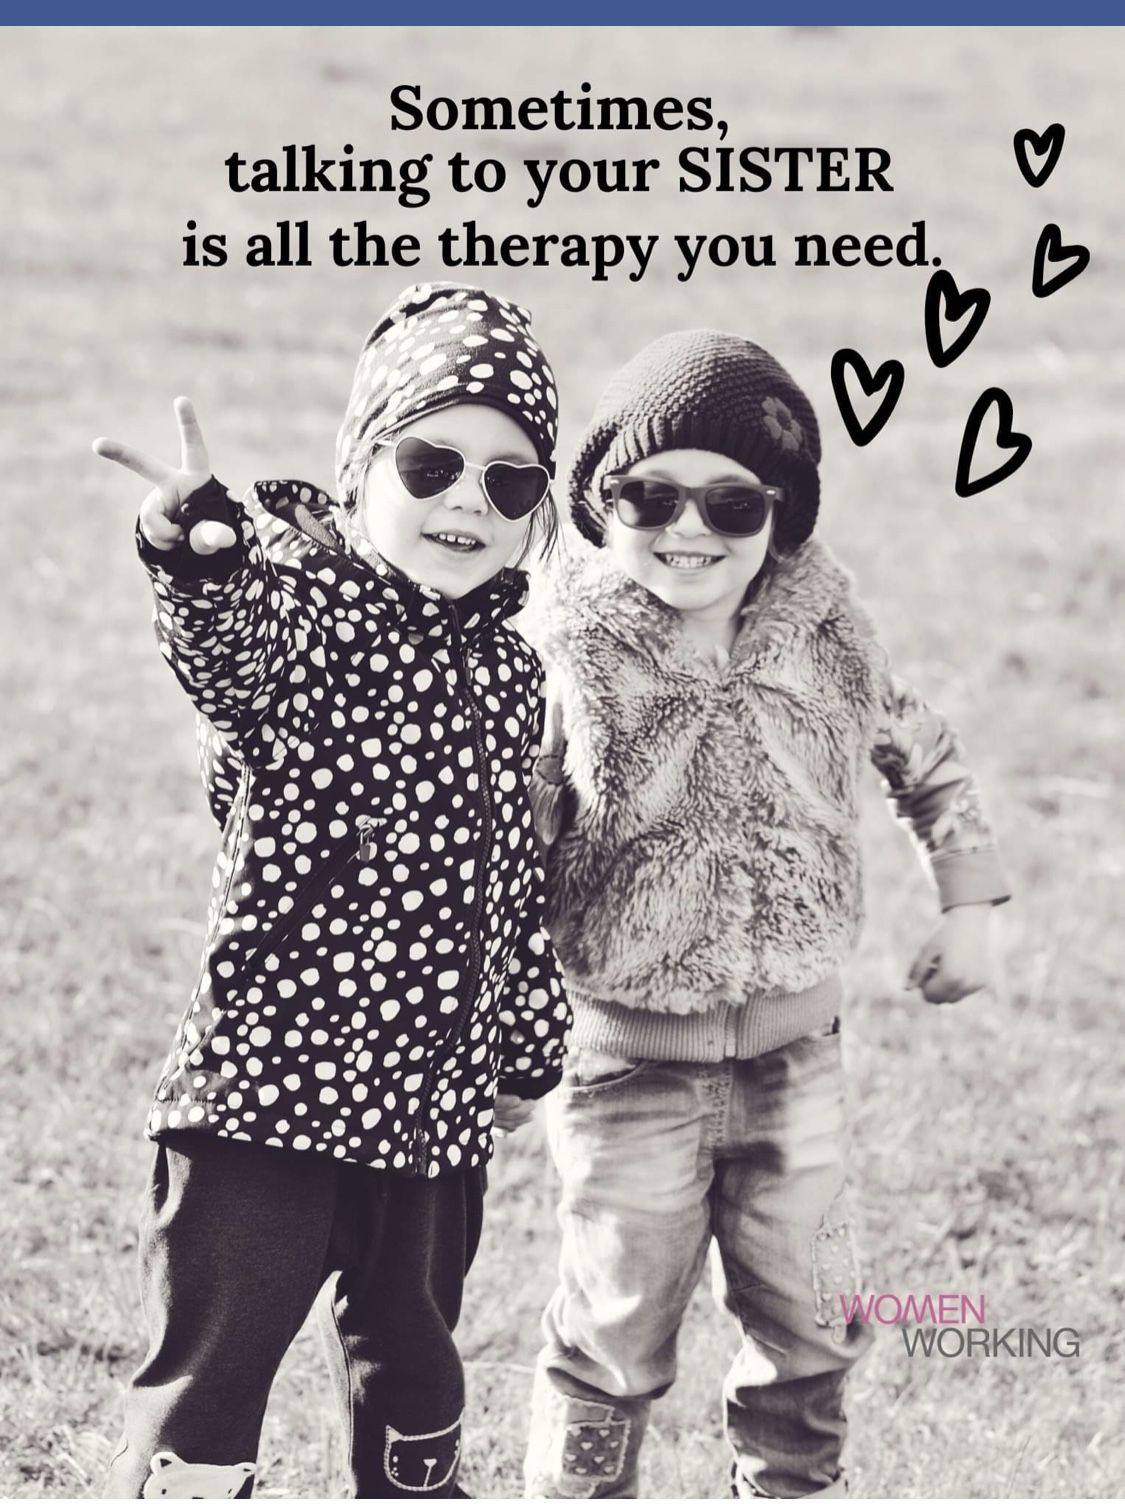 Pin By Ruth Ann Cline On I Love You Sister I Love You Sister Love Your Sister Positive Quotes